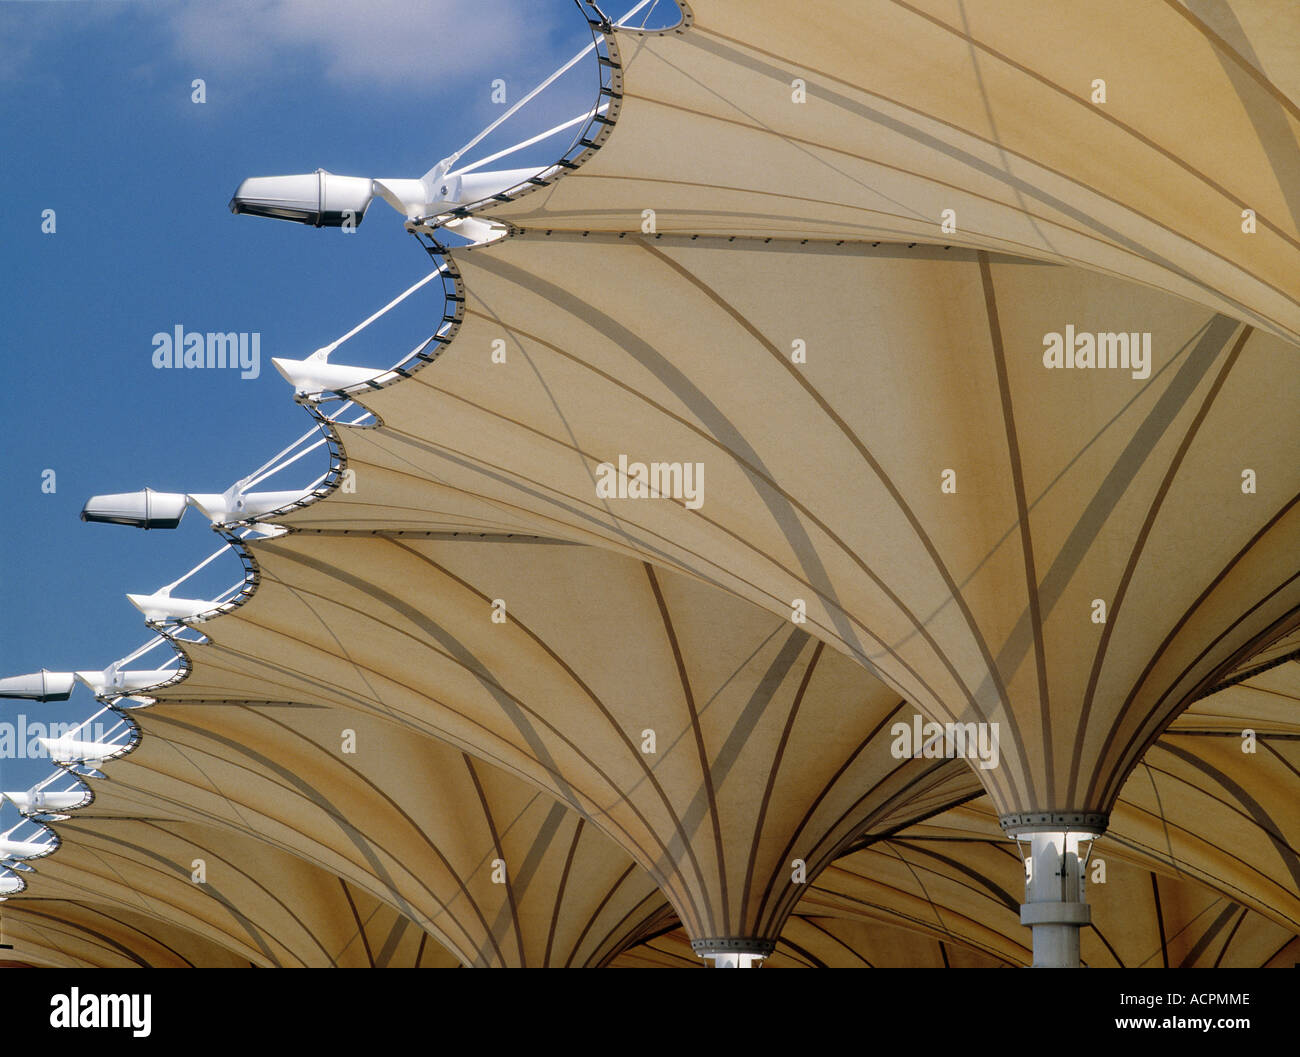 Canopy roofing at Stratford Bus Station London & Canopy roofing at Stratford Bus Station London Stock Photo ...